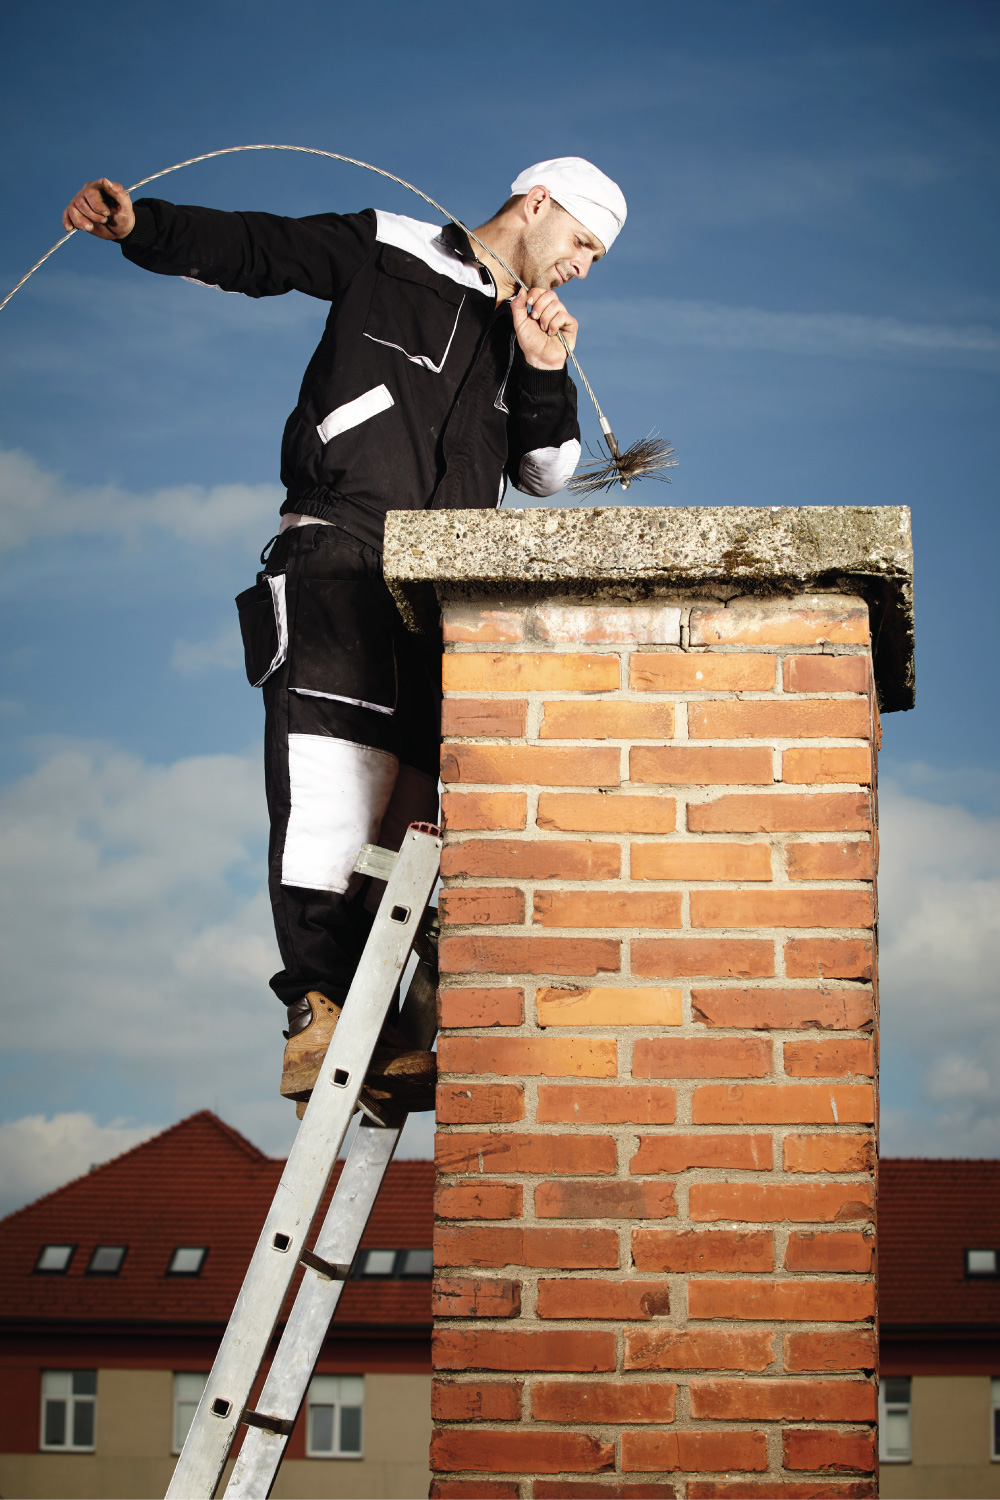 Chimney sweep man doing his job while on top of a ladder against a roof chimney